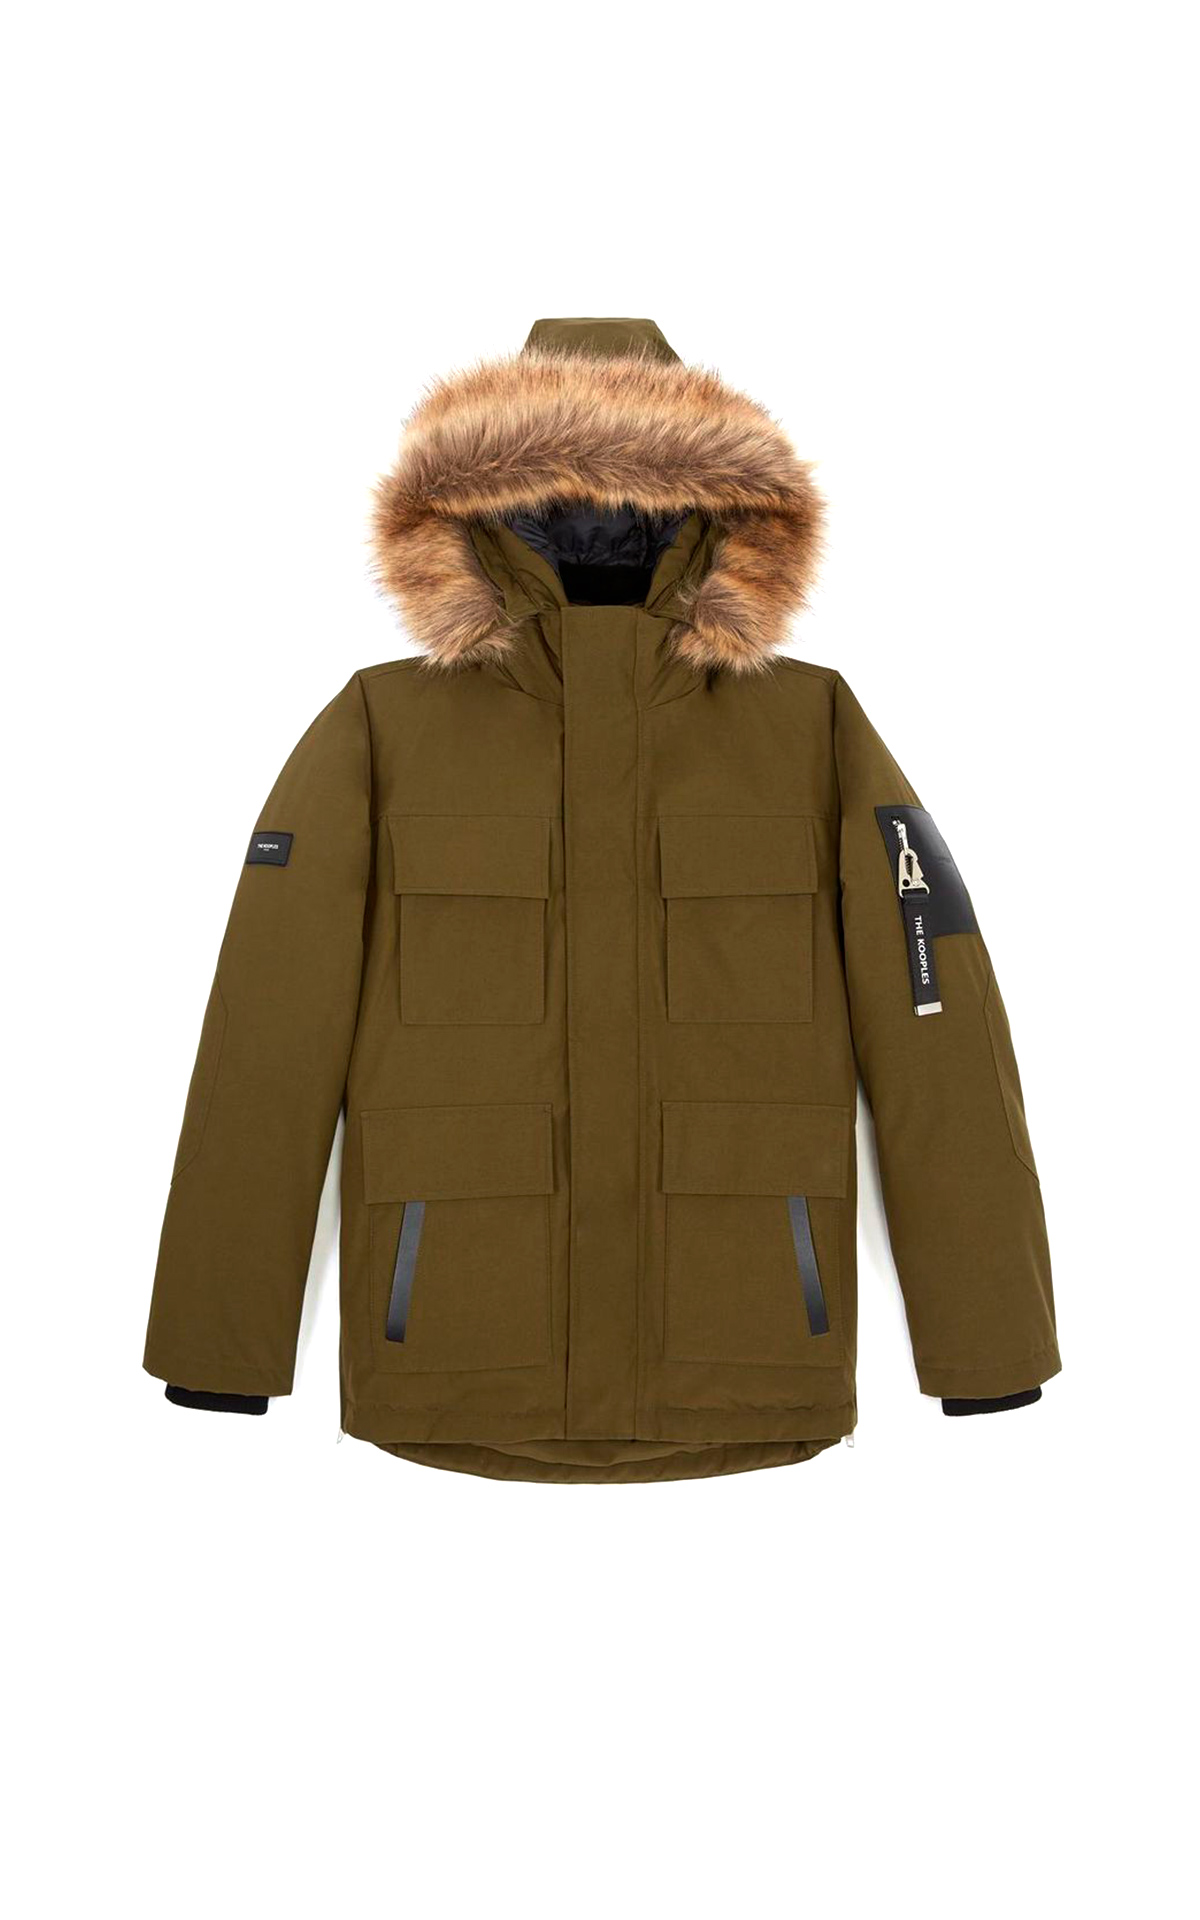 Parka caqui The Kooples